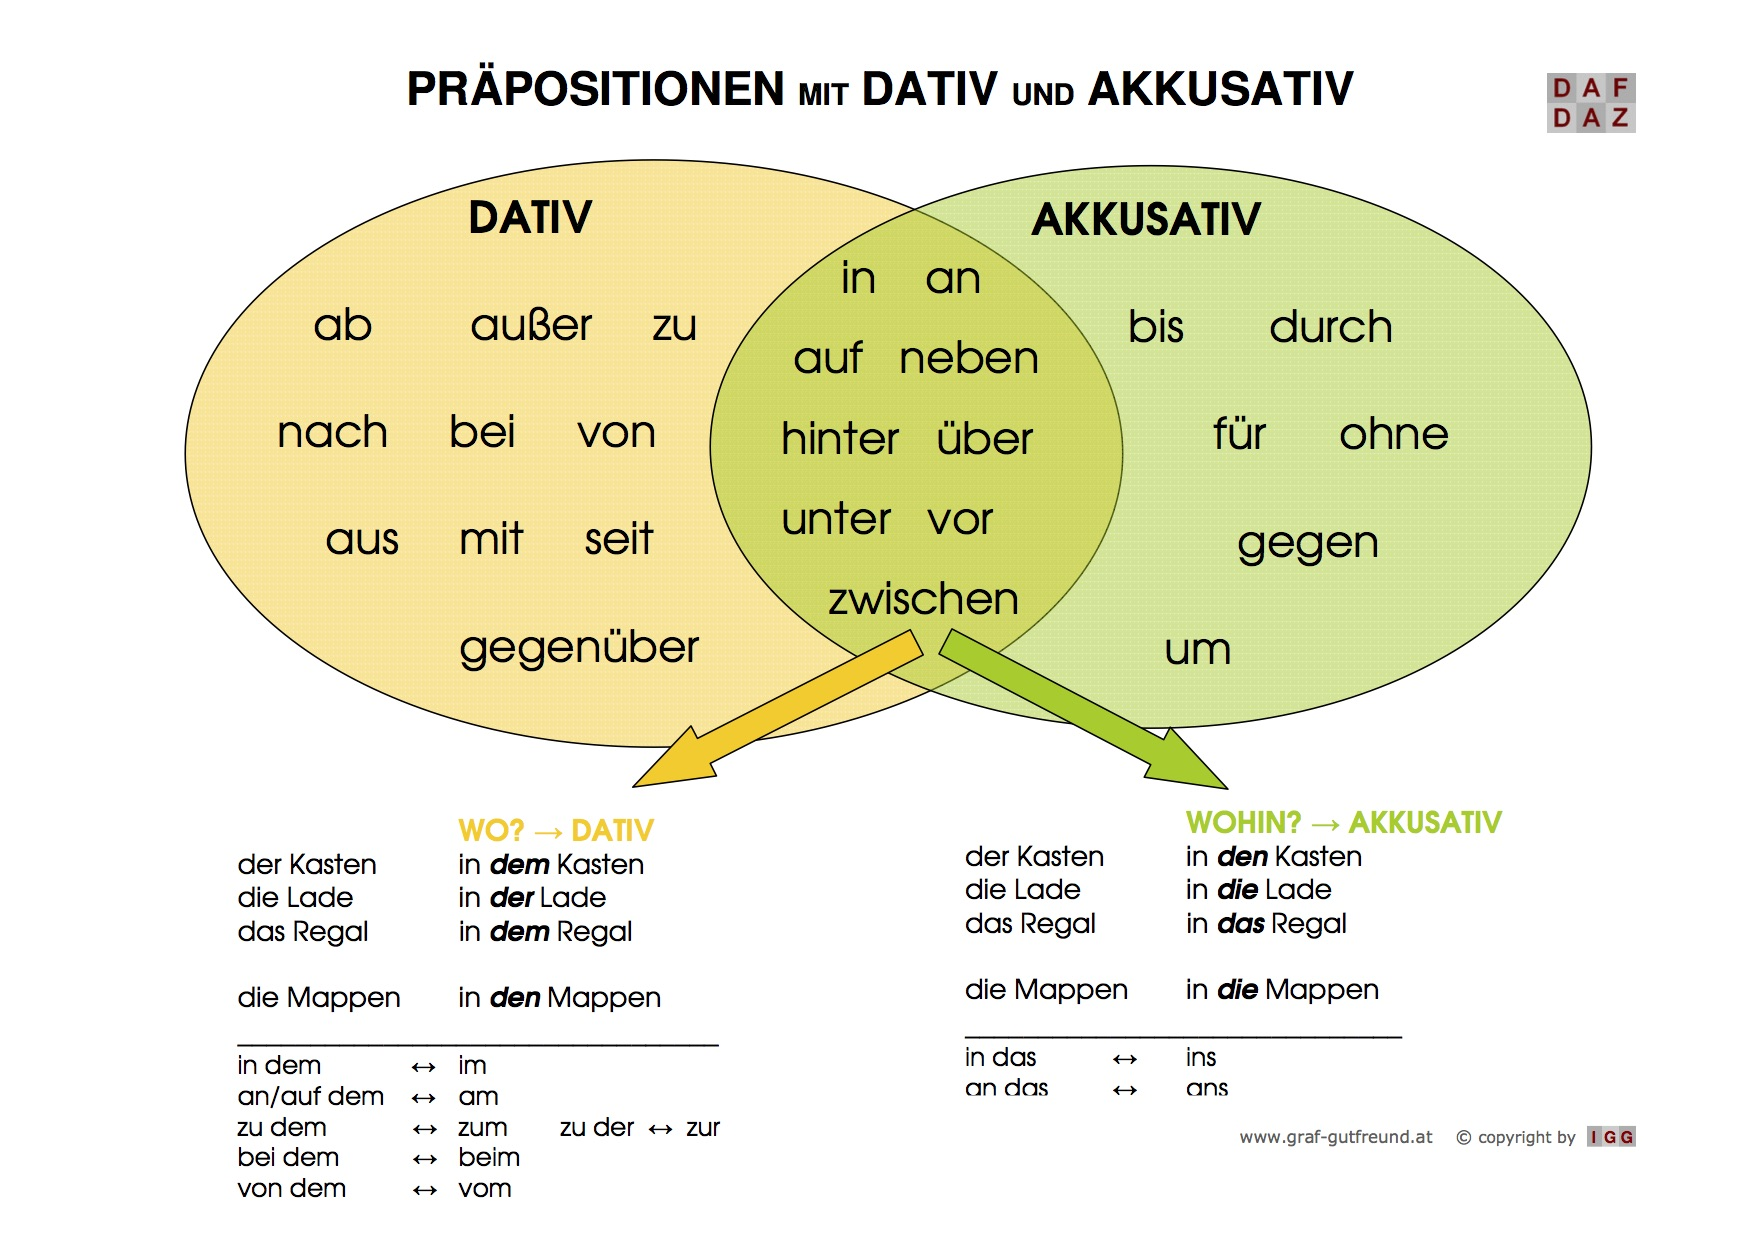 Comfortable prapositionen mit dativ und akkusativ deutsch for Prapositionen mit dativ und akkusativ ubungen